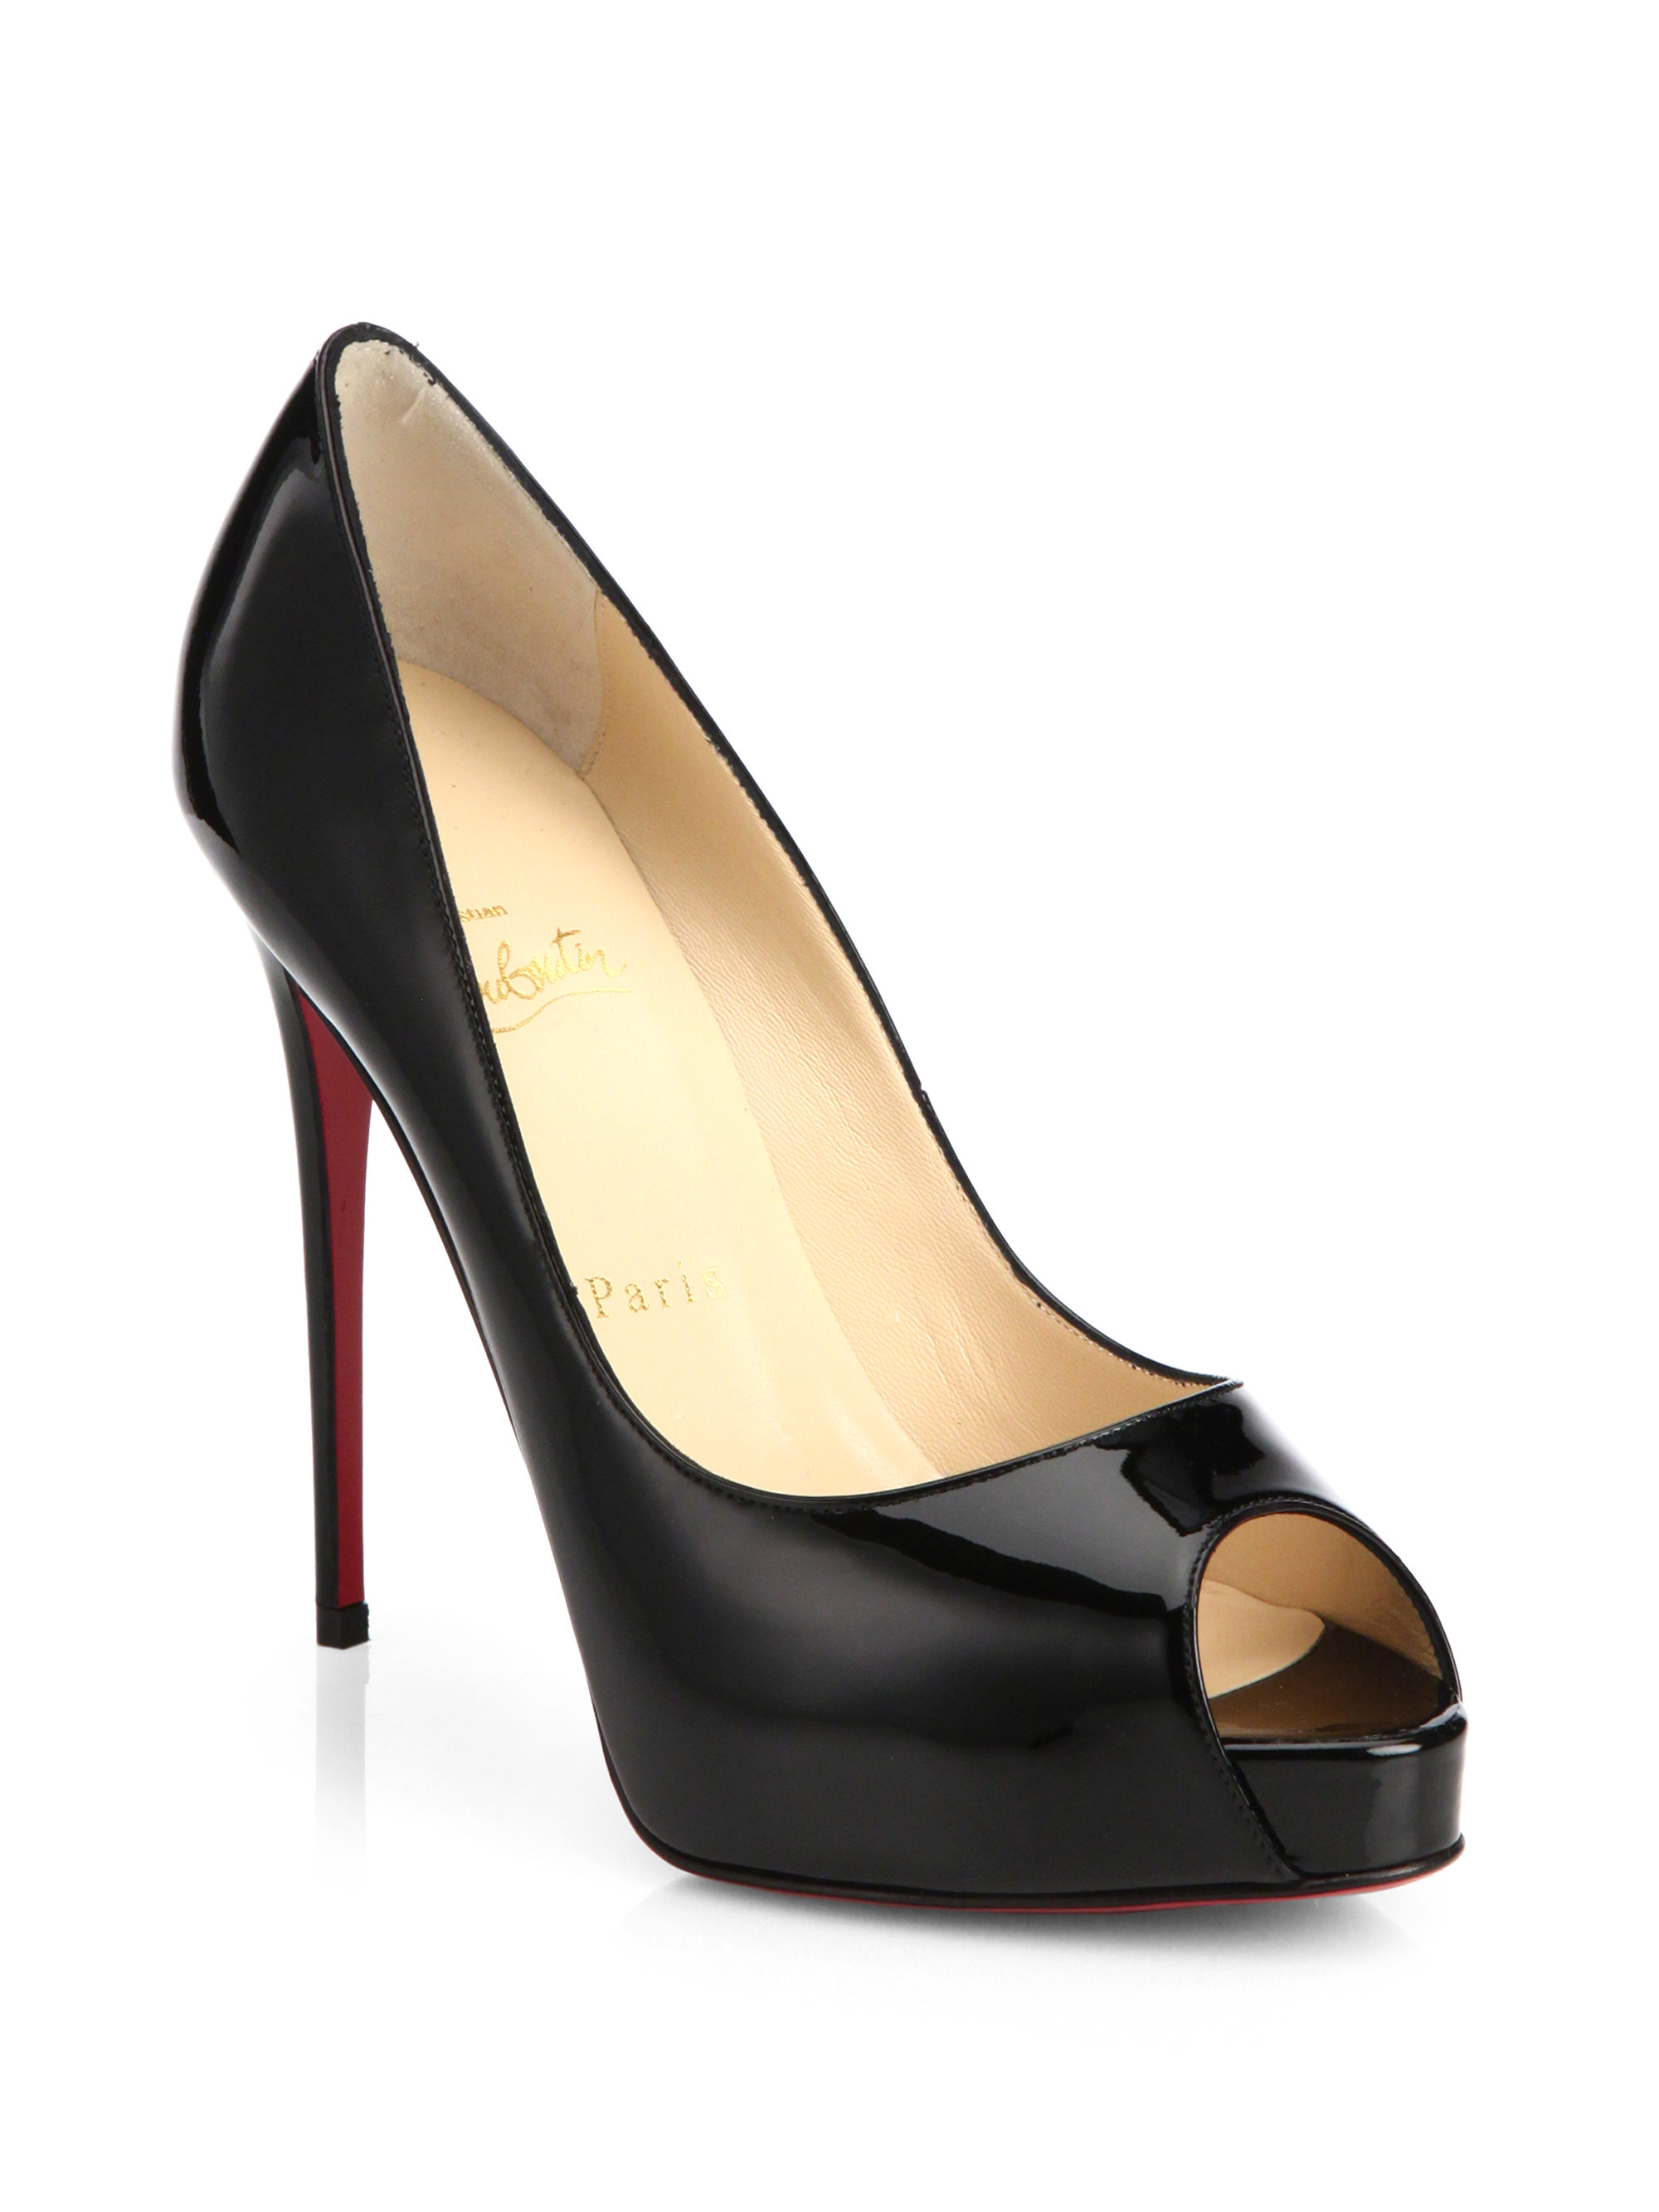 blue christian louboutin sneakers - Christian louboutin New Very Prive Patent Leather Peep-toe Pumps ...